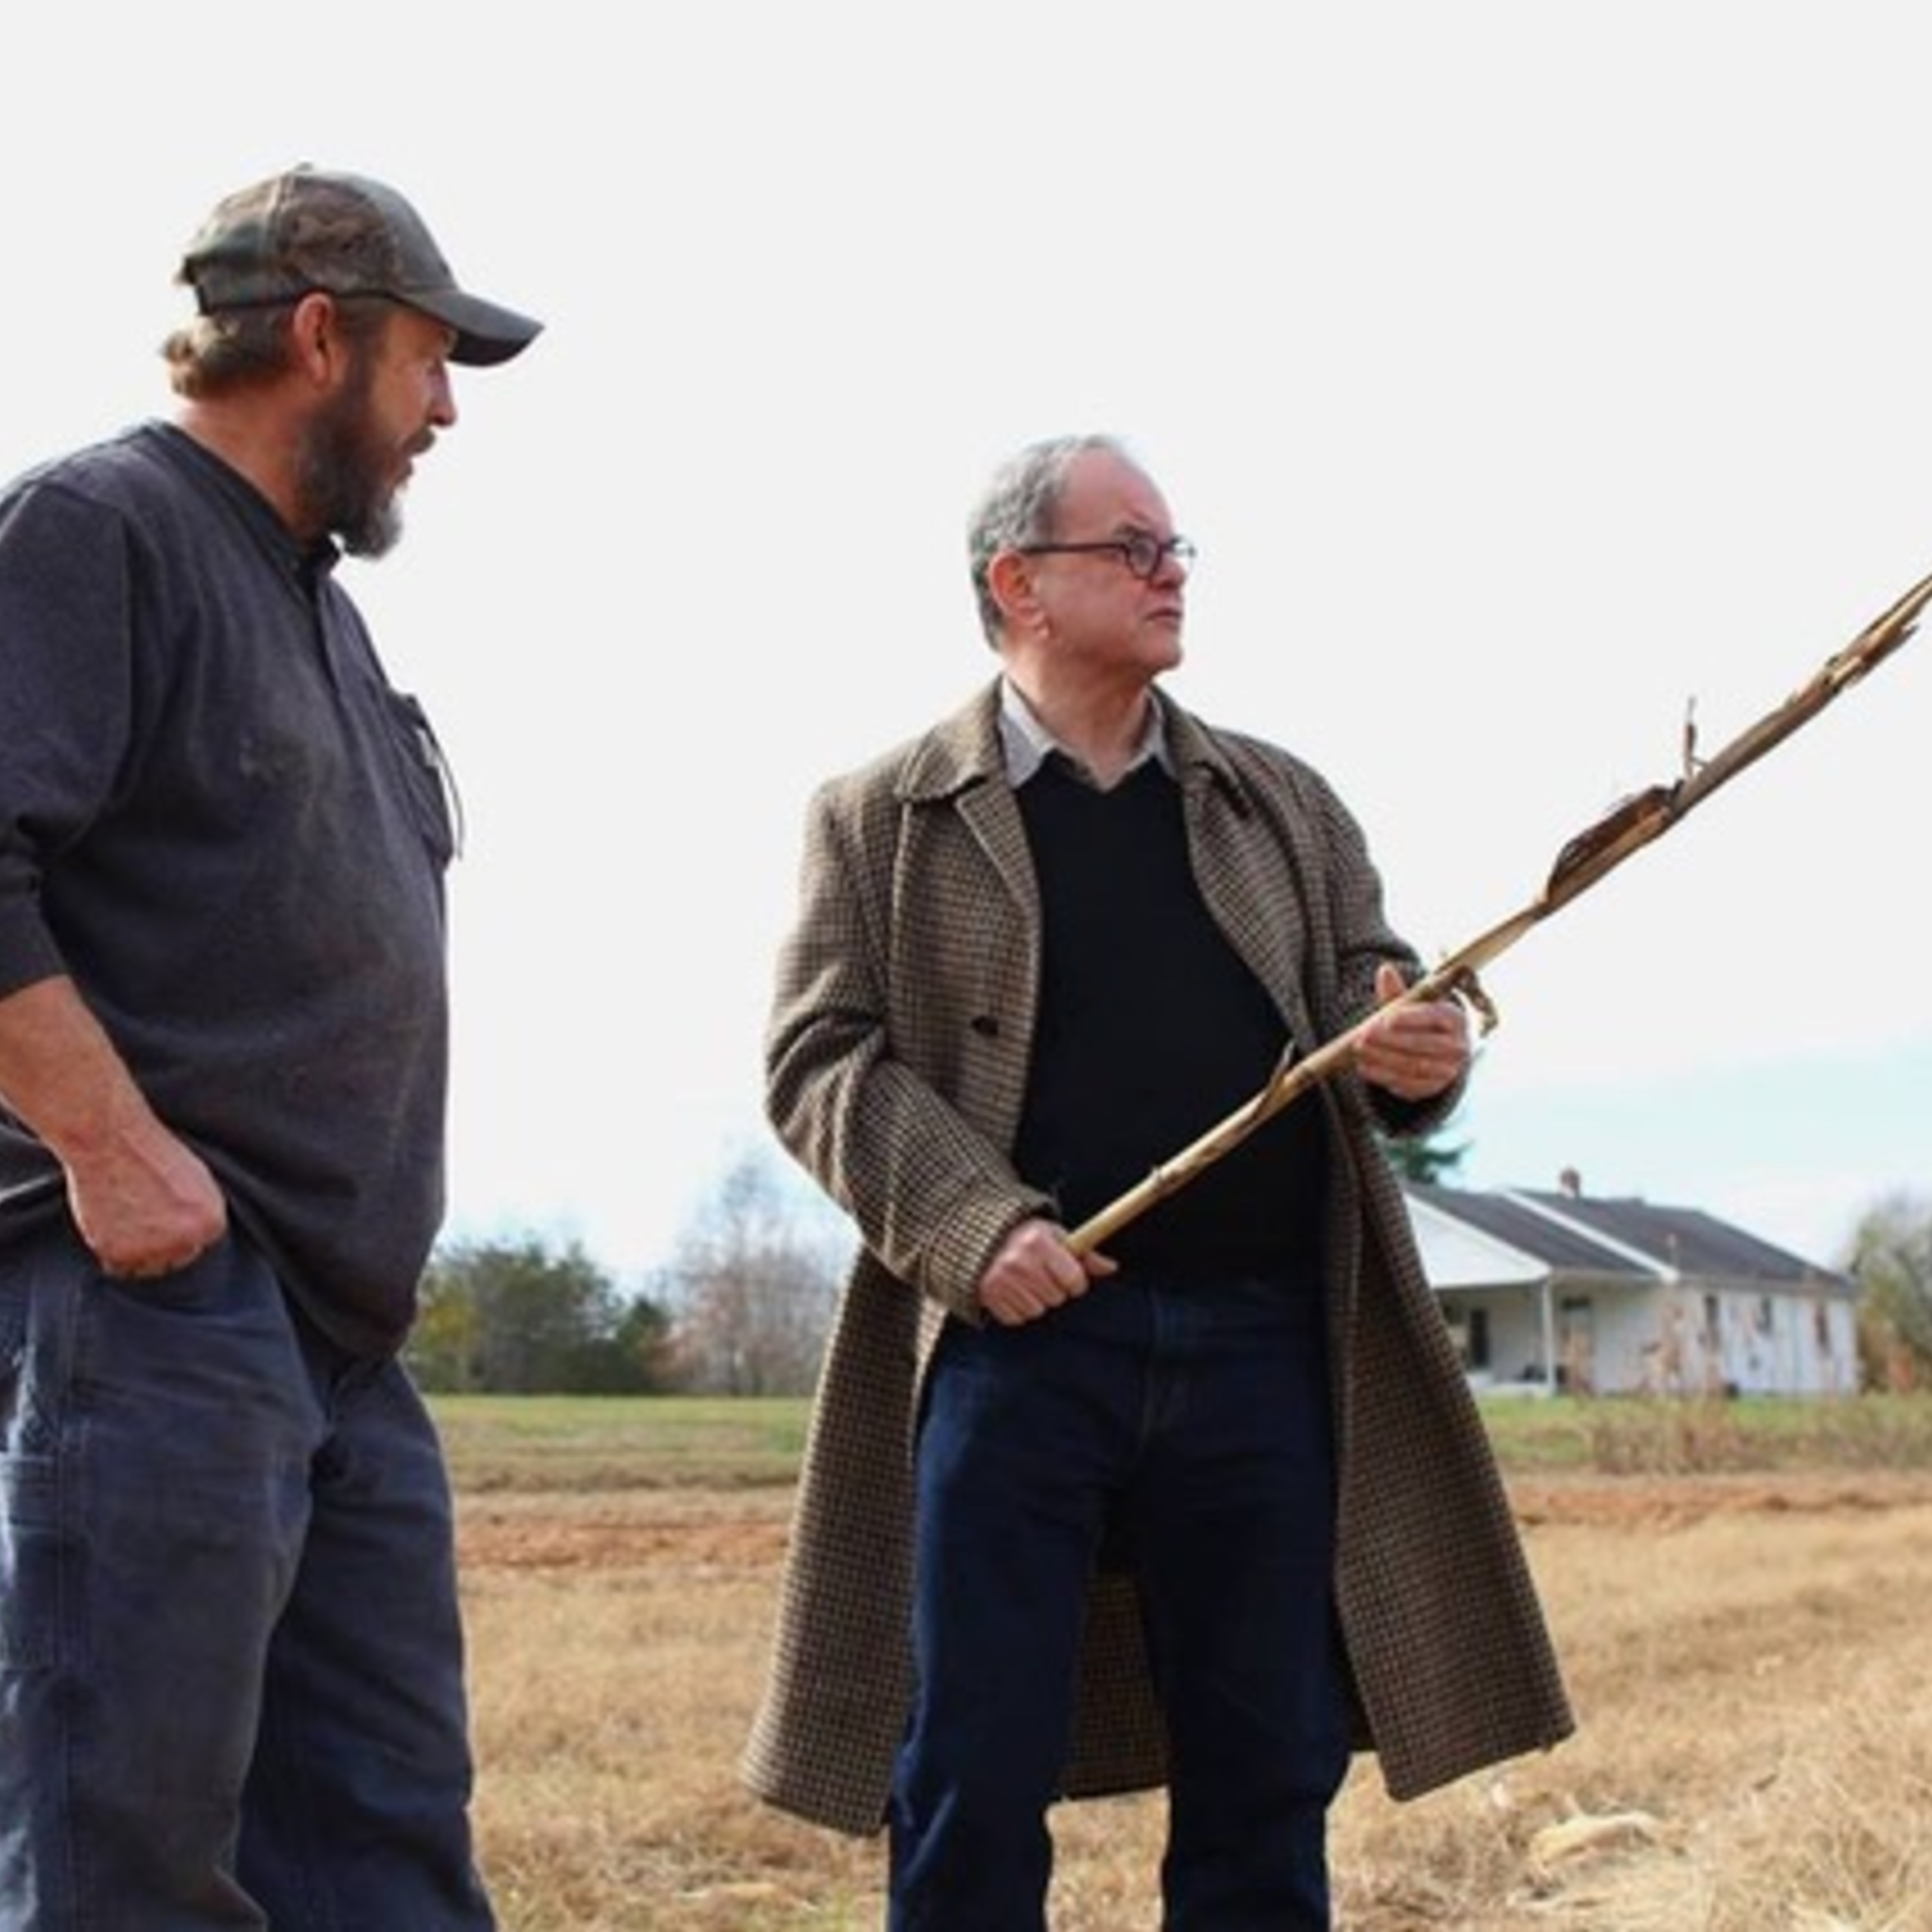 Episode 288: David Shields, The Seed Sleuth, Repatriating Heirloom Crops